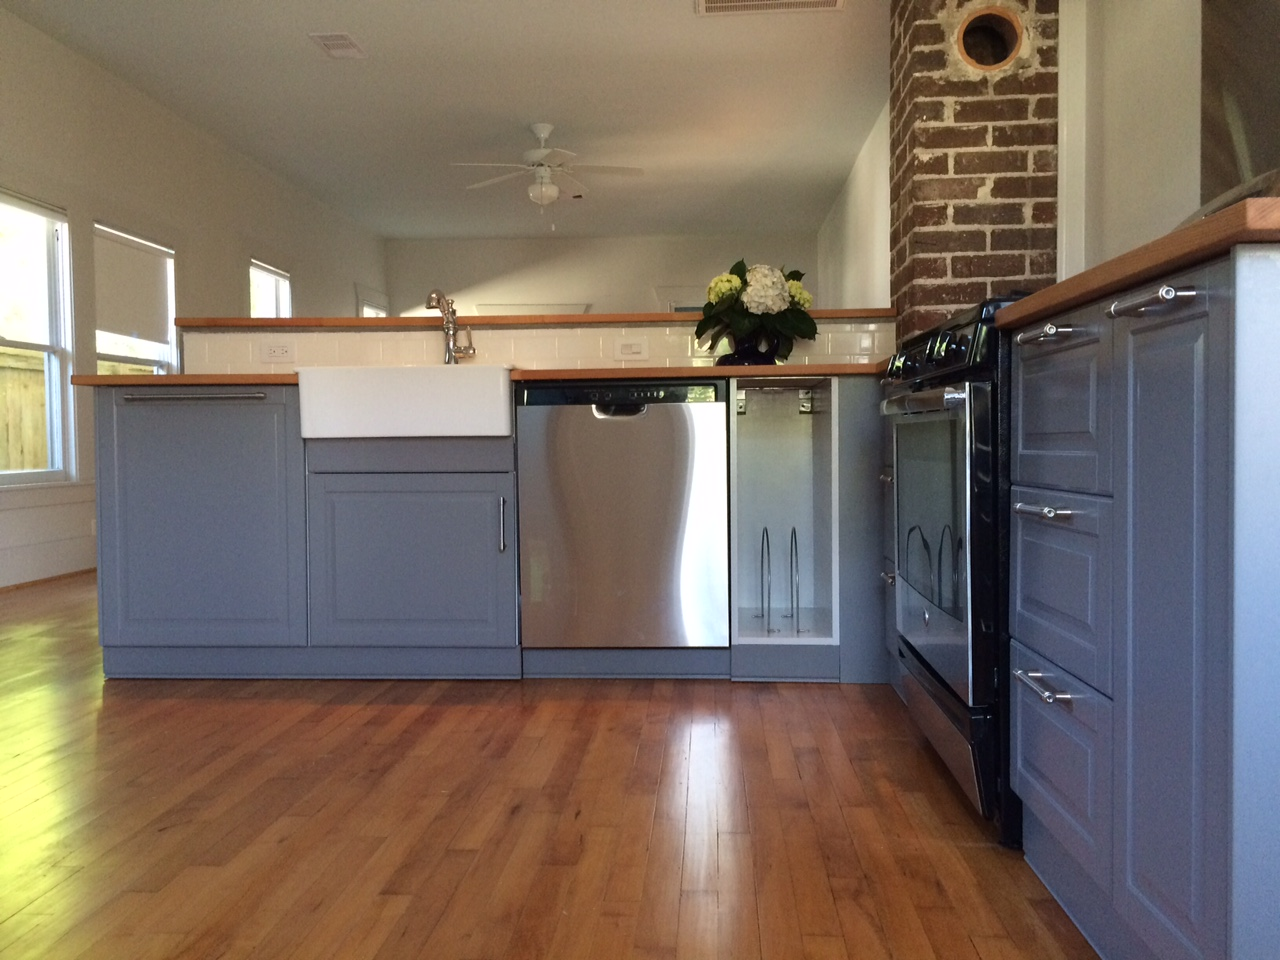 1920s Kitchen Cabinets An Ikea Kitchen Renovation Saves This 1920s Bungalow Home